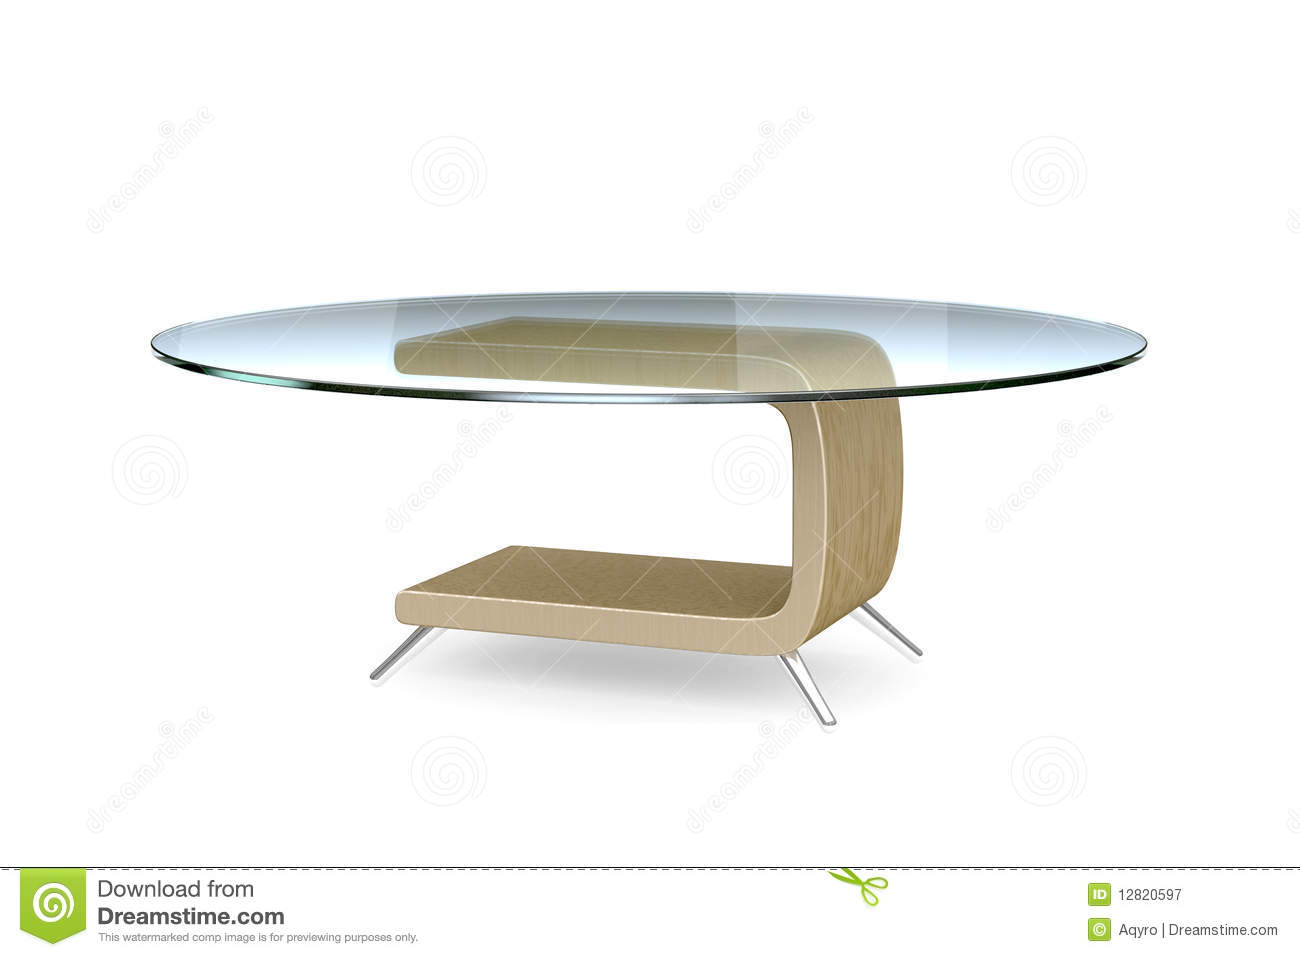 of modern room dining plates are tables each one italian table contemporary laser that steel shades cut and has a width legs the big highlights different nuances bonaldo